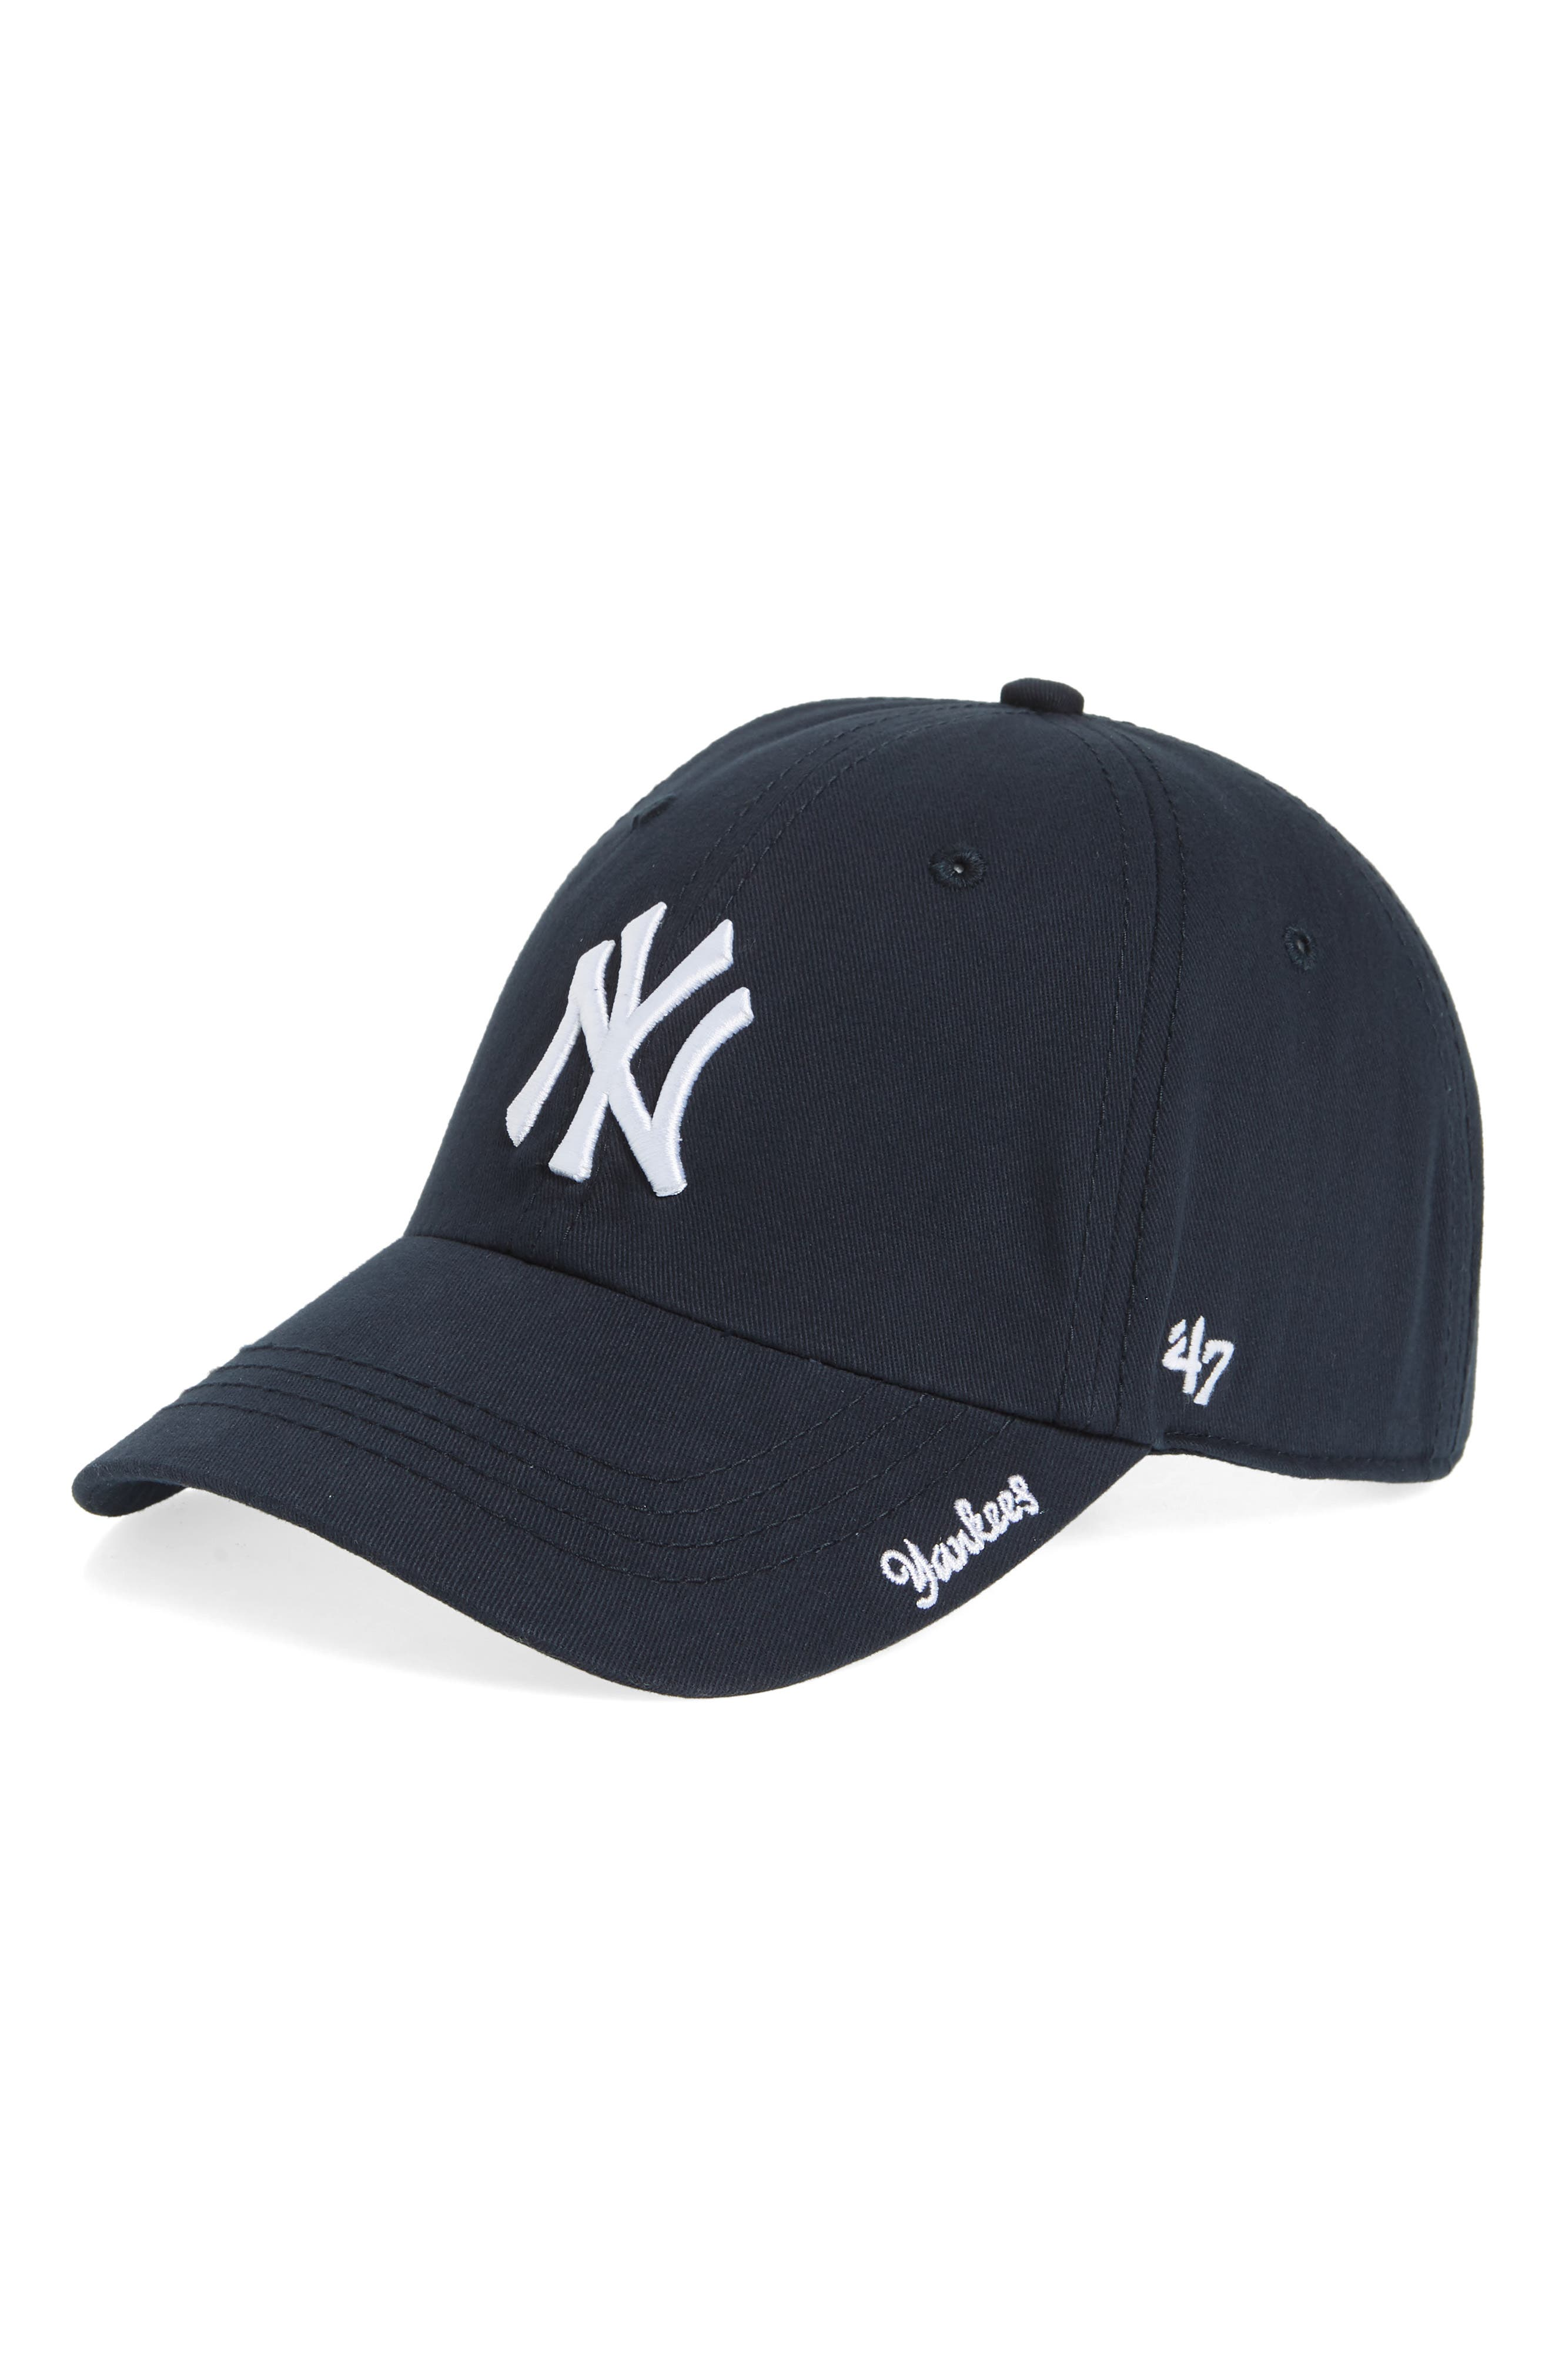 Miata Clean-Up New York Yankees Baseball Cap,                             Main thumbnail 1, color,                             Navy